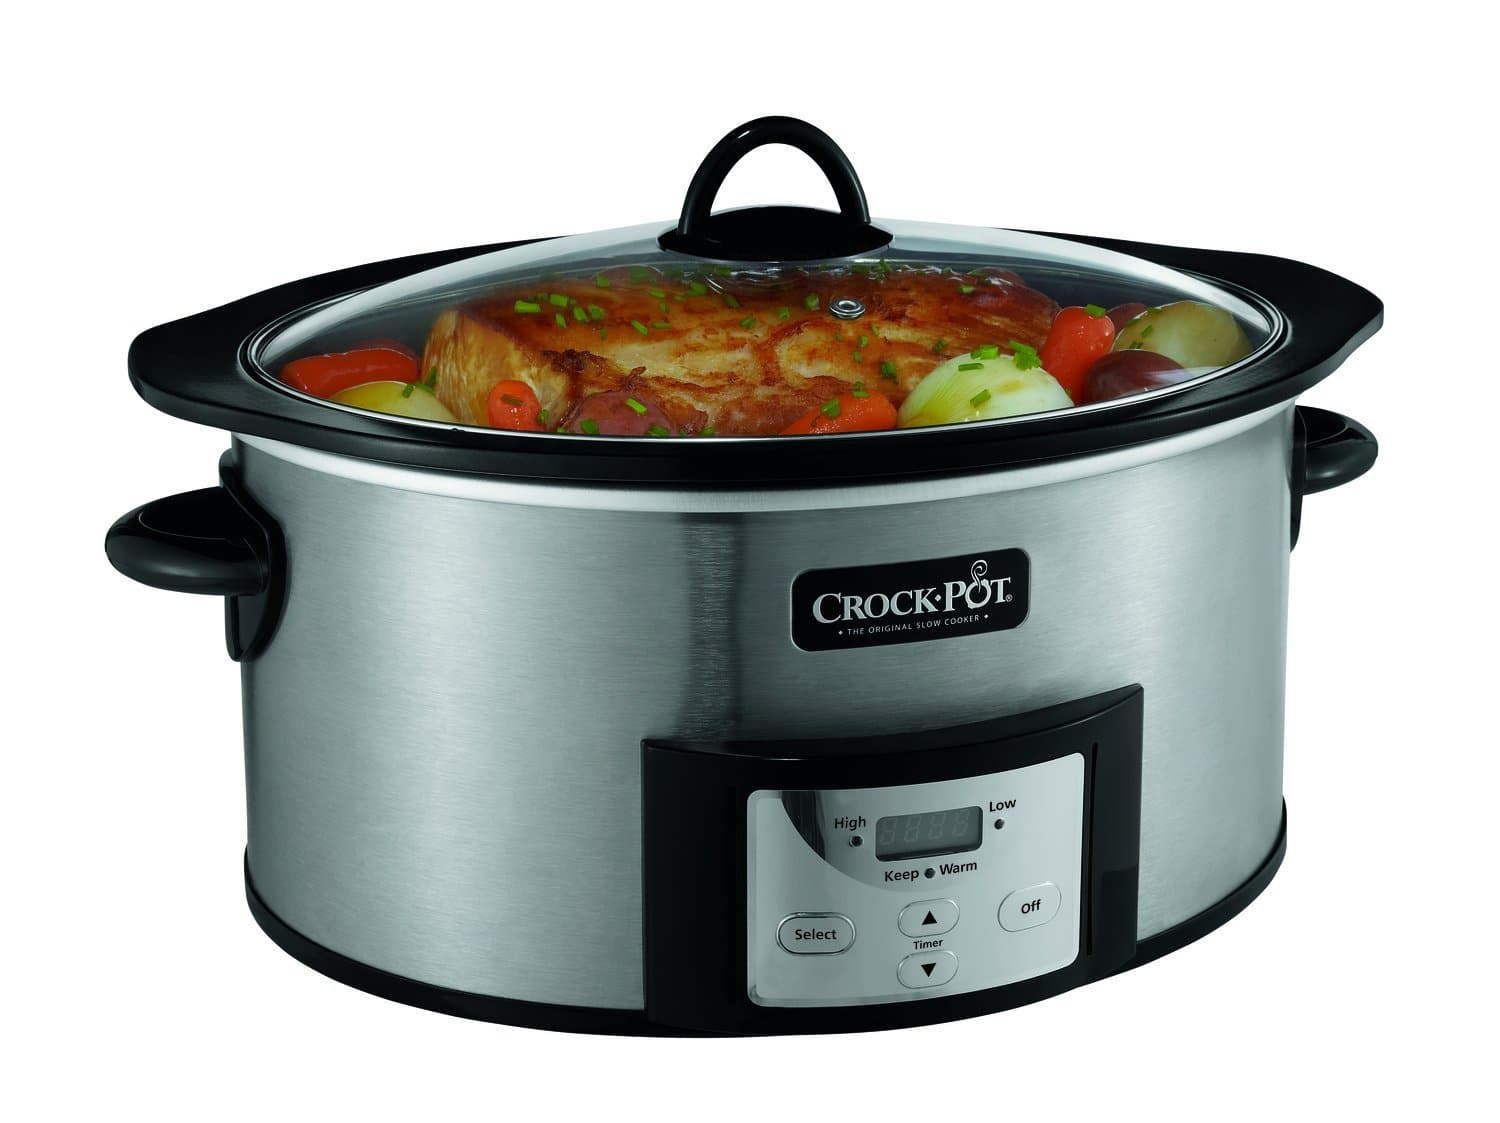 6 quart progammable Crock-Pot with Stove-Top Browning $38.4